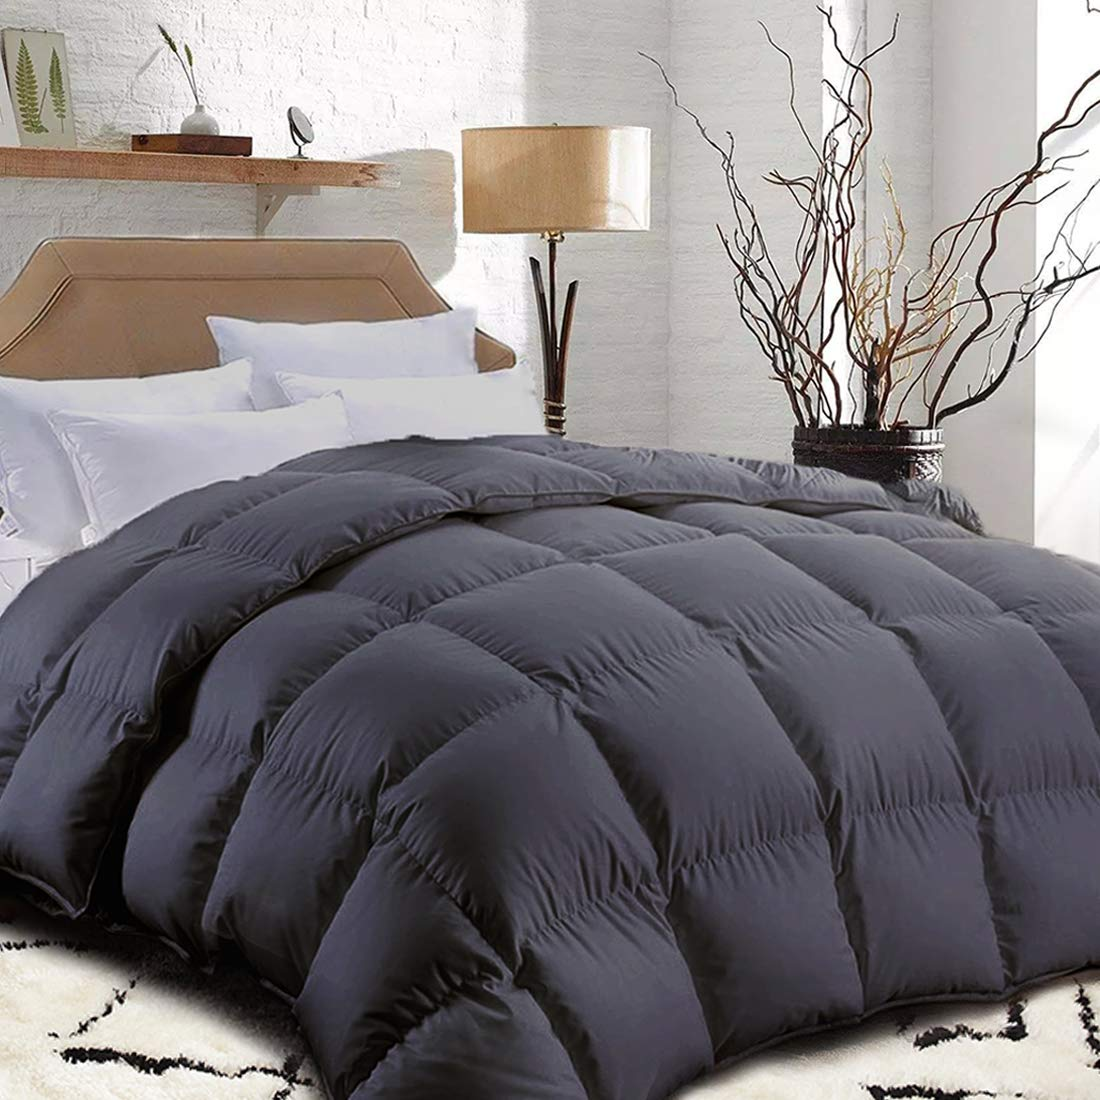 Twin Comforter Soft Summer Cooling Goose Down Alternative Duvet Insert 2100 Hypoallergenic Quilt with Corner Tab for all Season,Prima Microfiber Filled Reversible Hotel Collection,Grey,64 X 88 inch